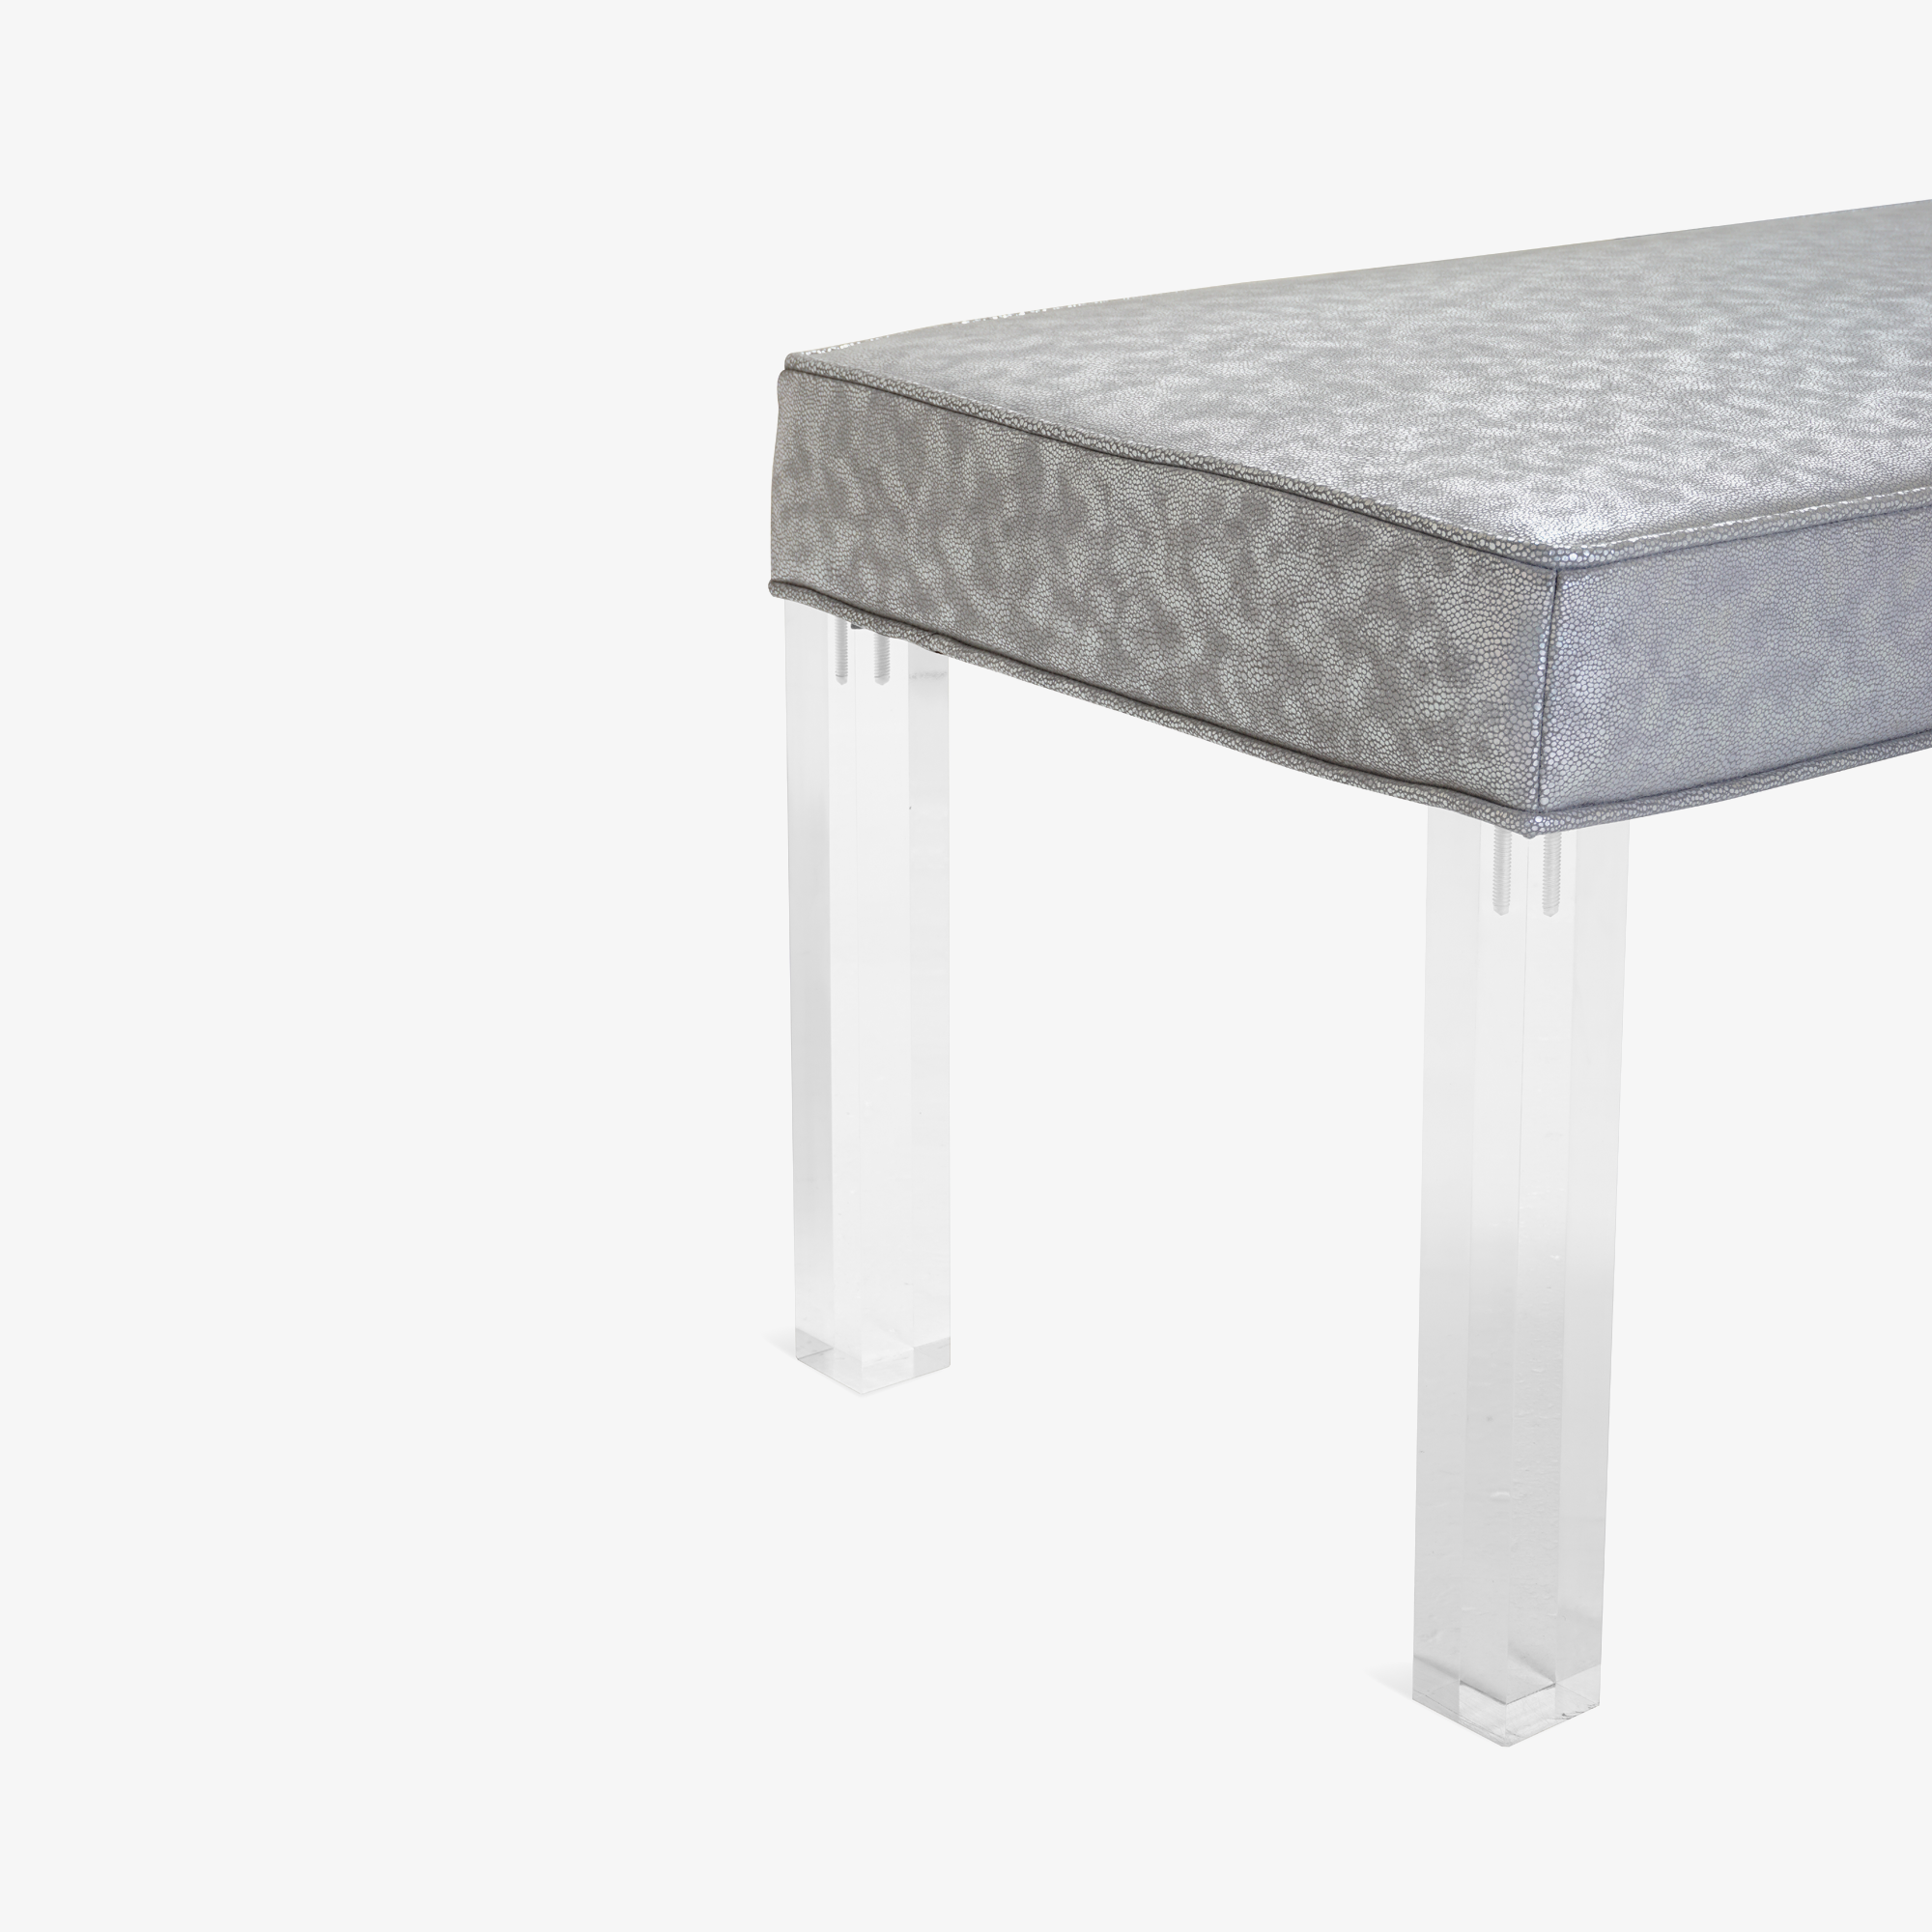 Prism Bench in Shark Motif Leather by Montage3.png